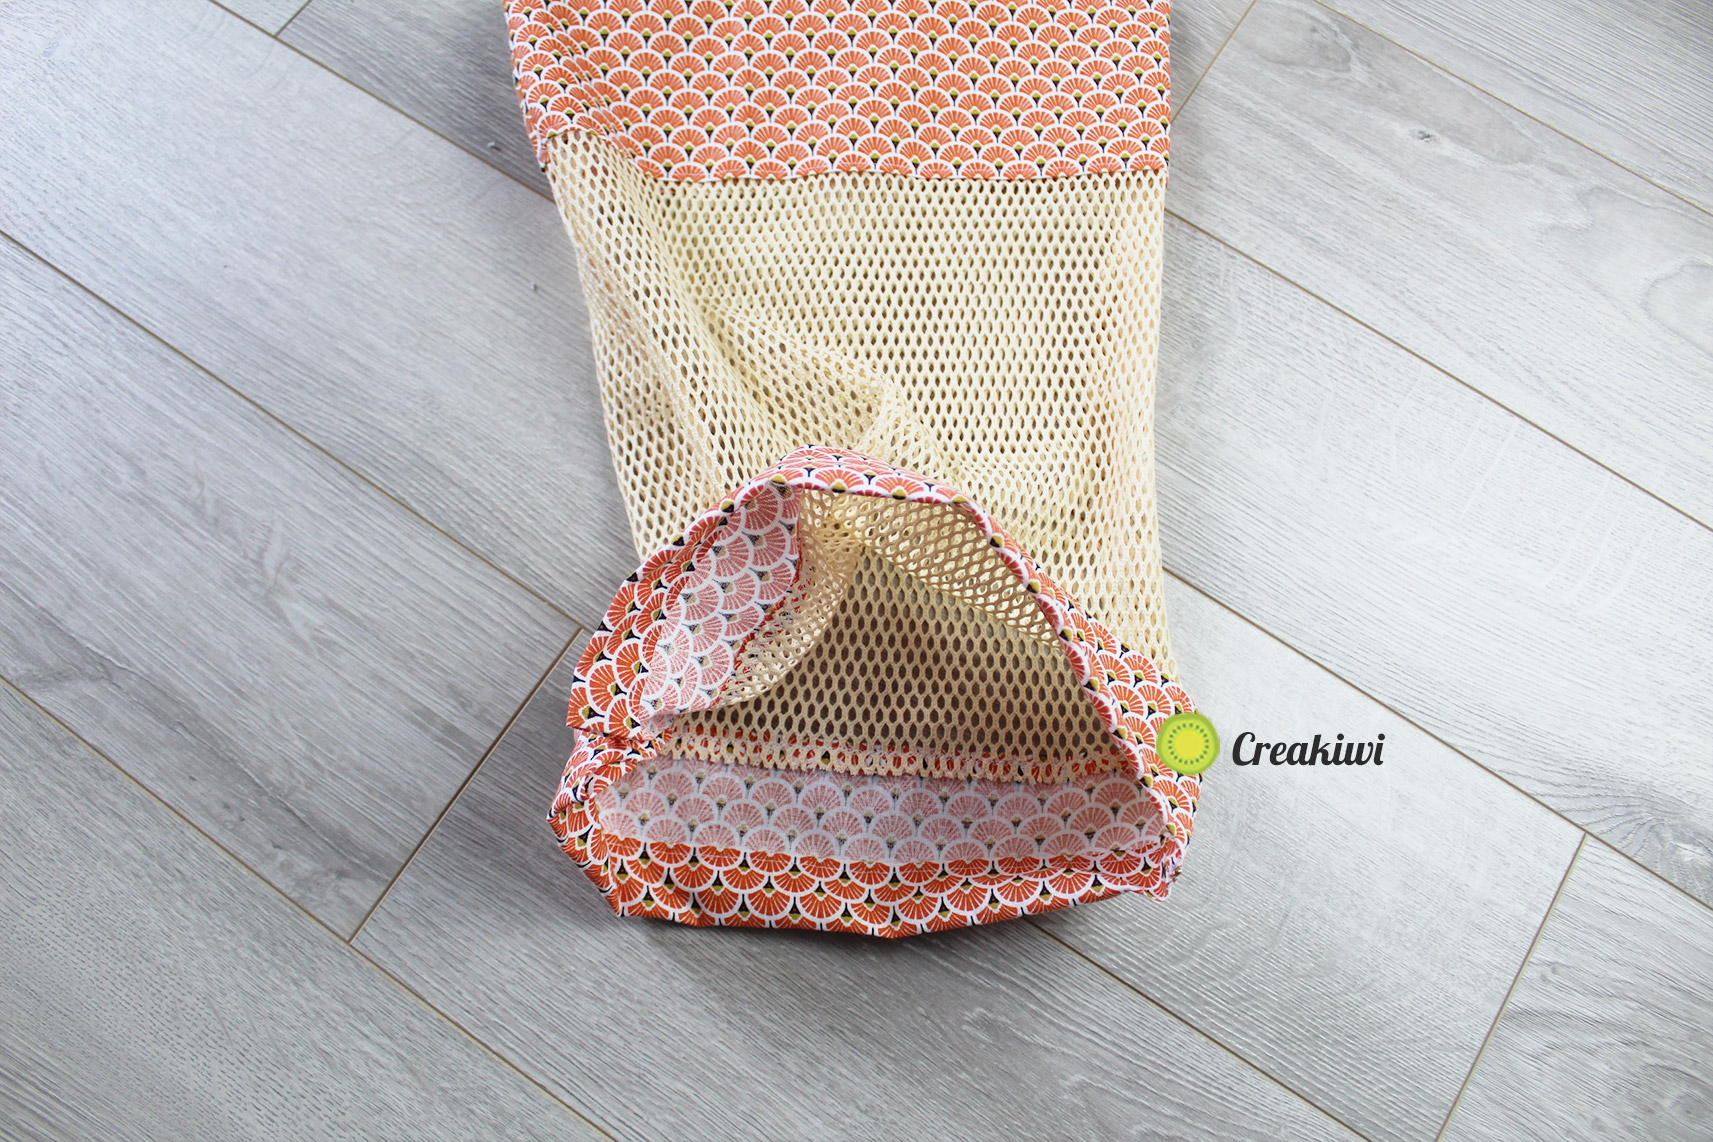 Sac à vrac orange avec filet en coton bio